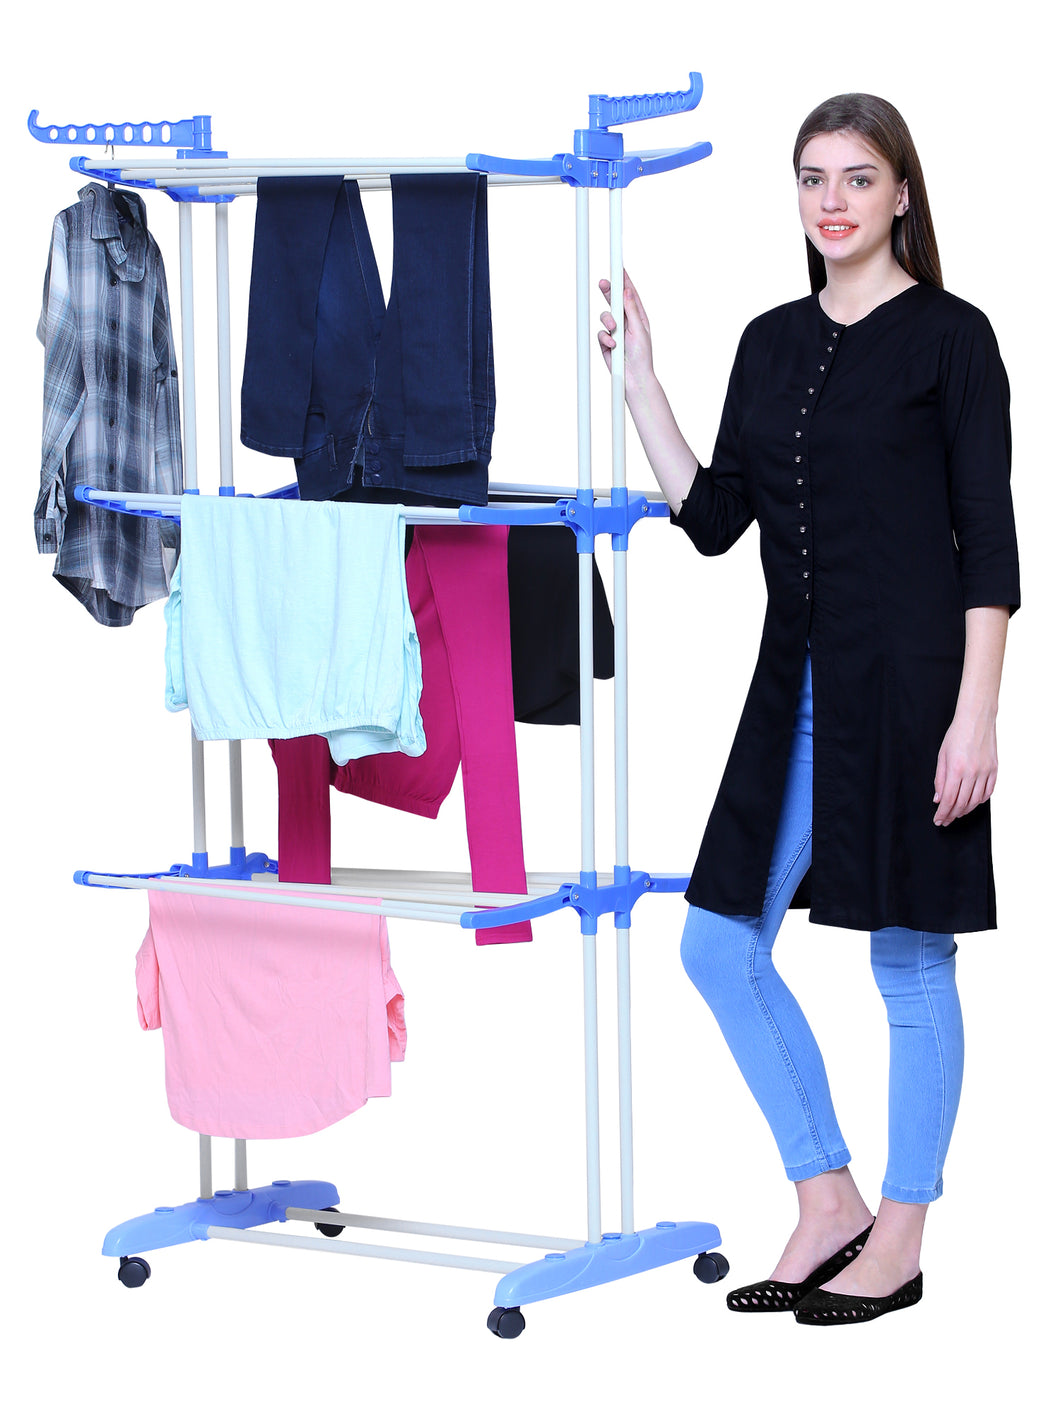 PARASNATH Steel 6 Layer Pole Clothes Drying Stand With Breaking Wheel System - PARASNATH MADE IN INDIA